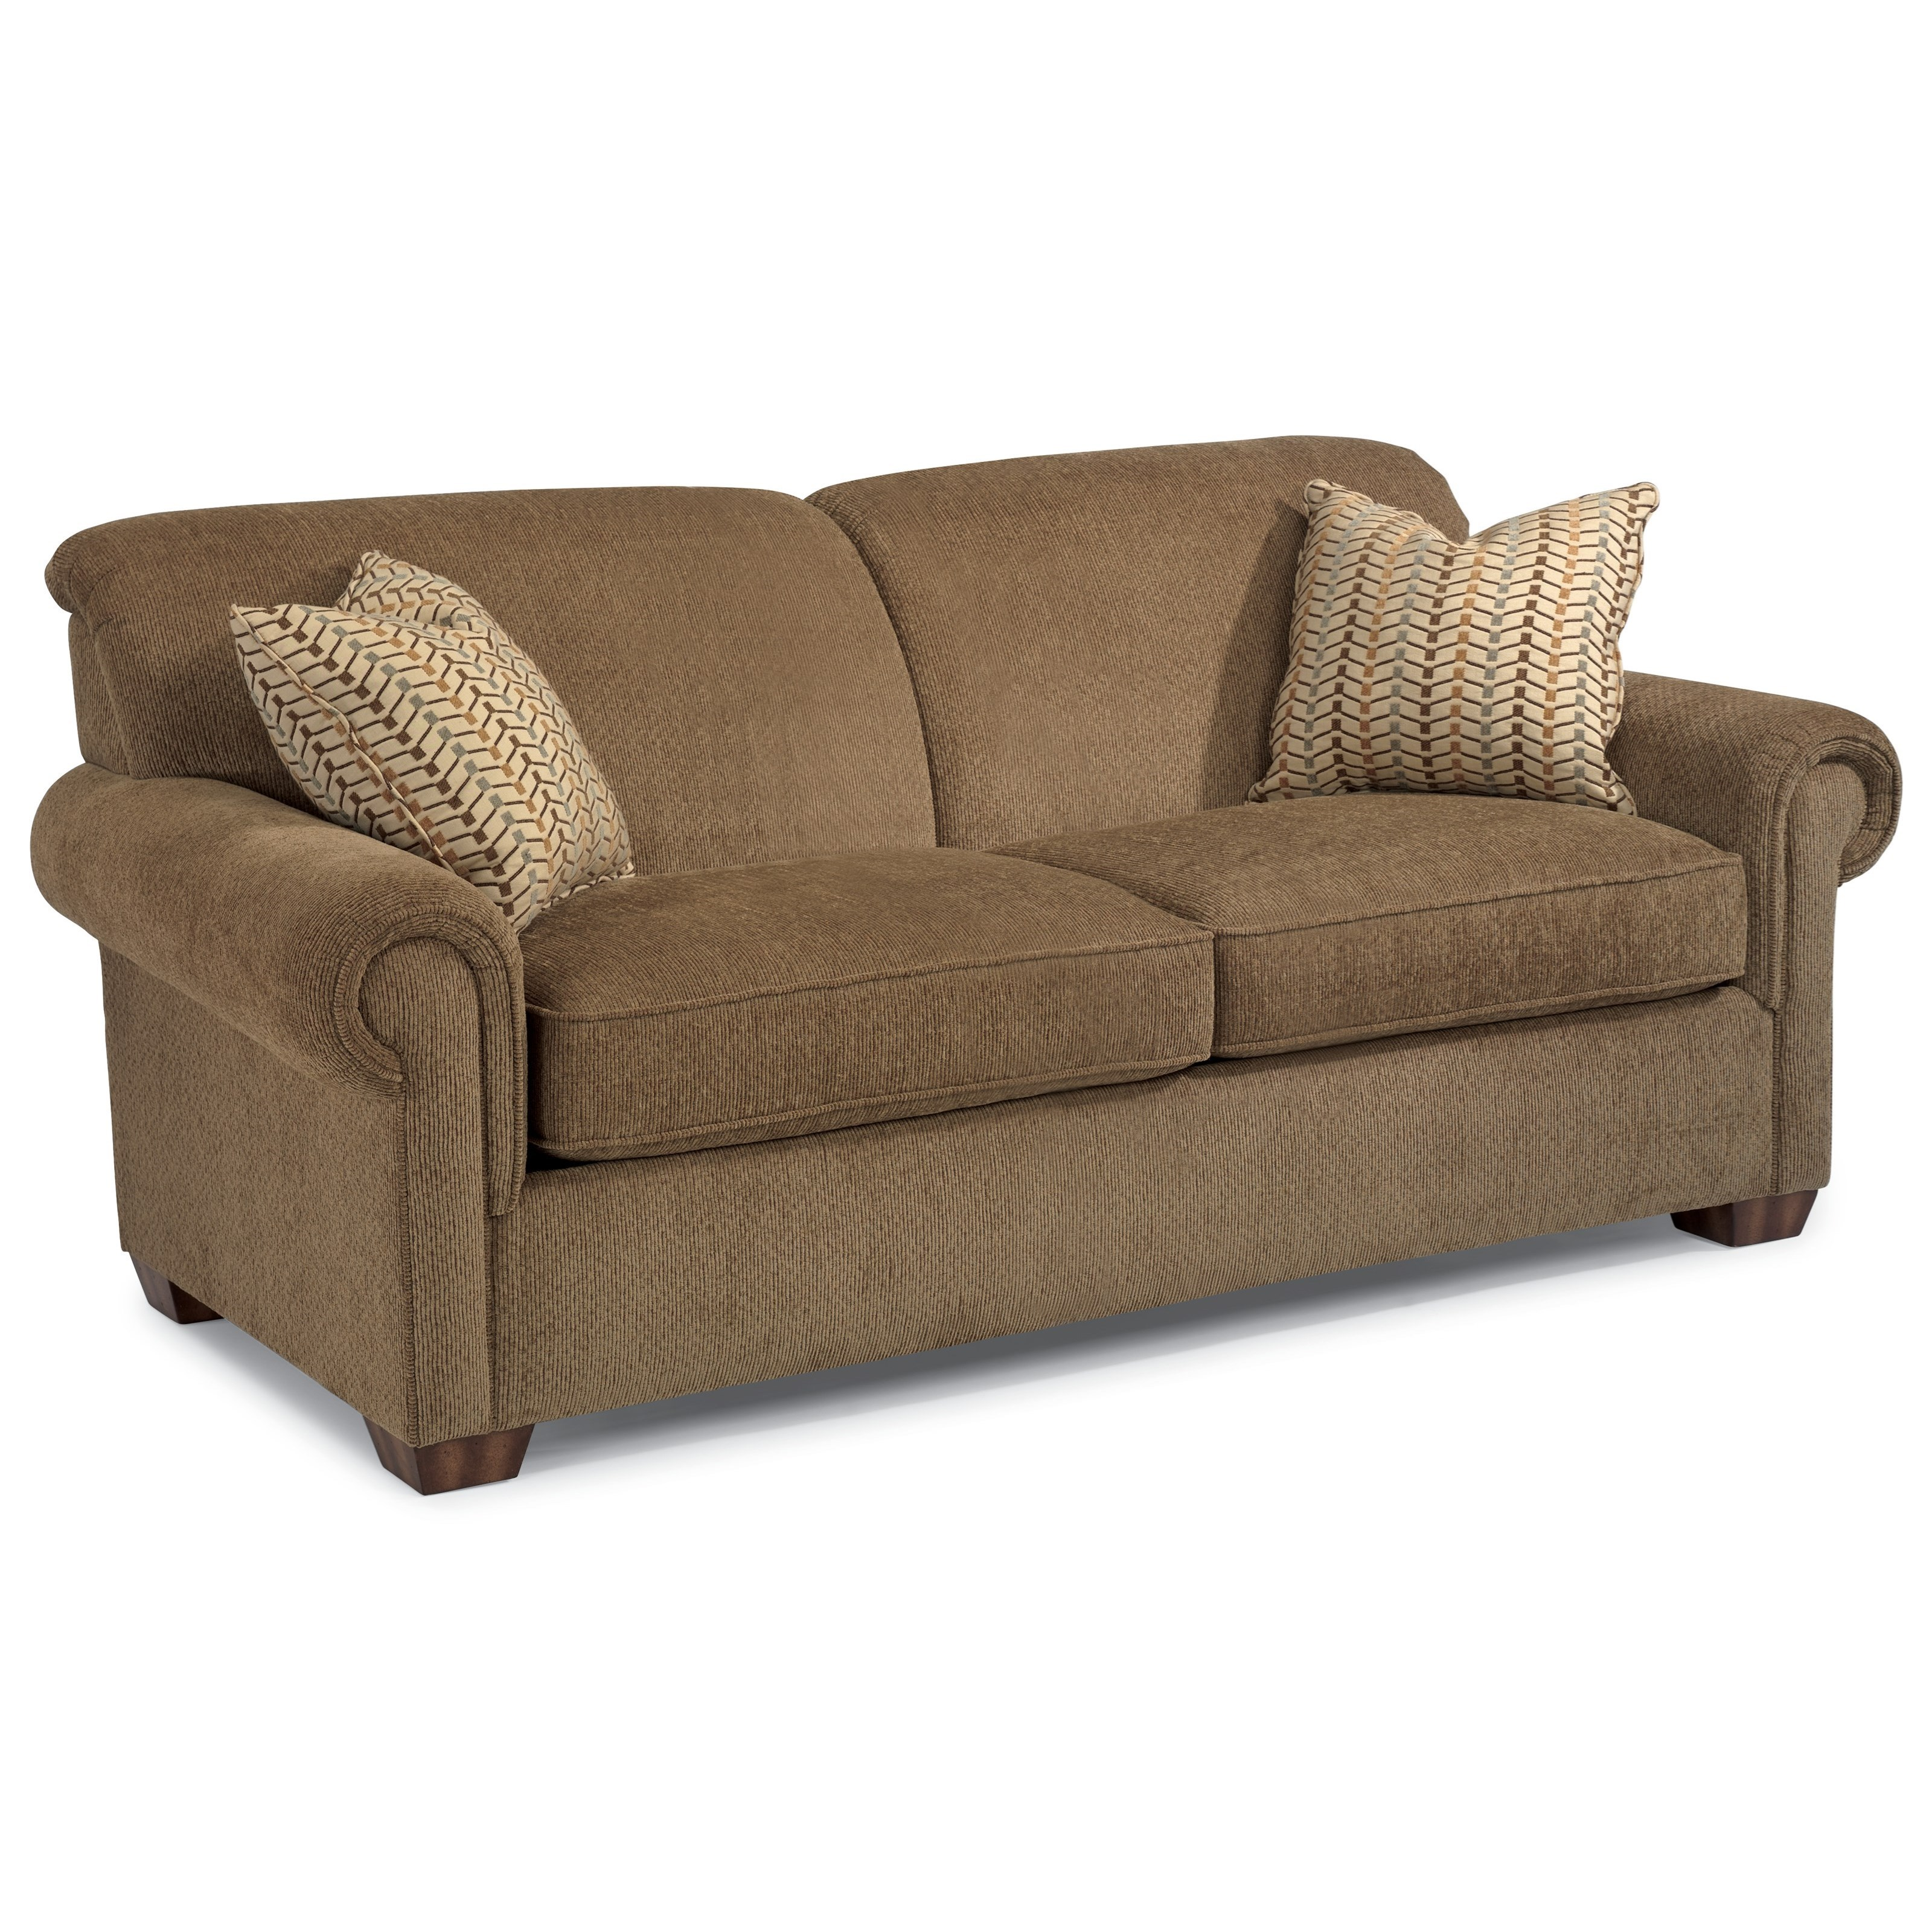 Main Street Full Sofa Sleeper by Flexsteel at Mueller Furniture